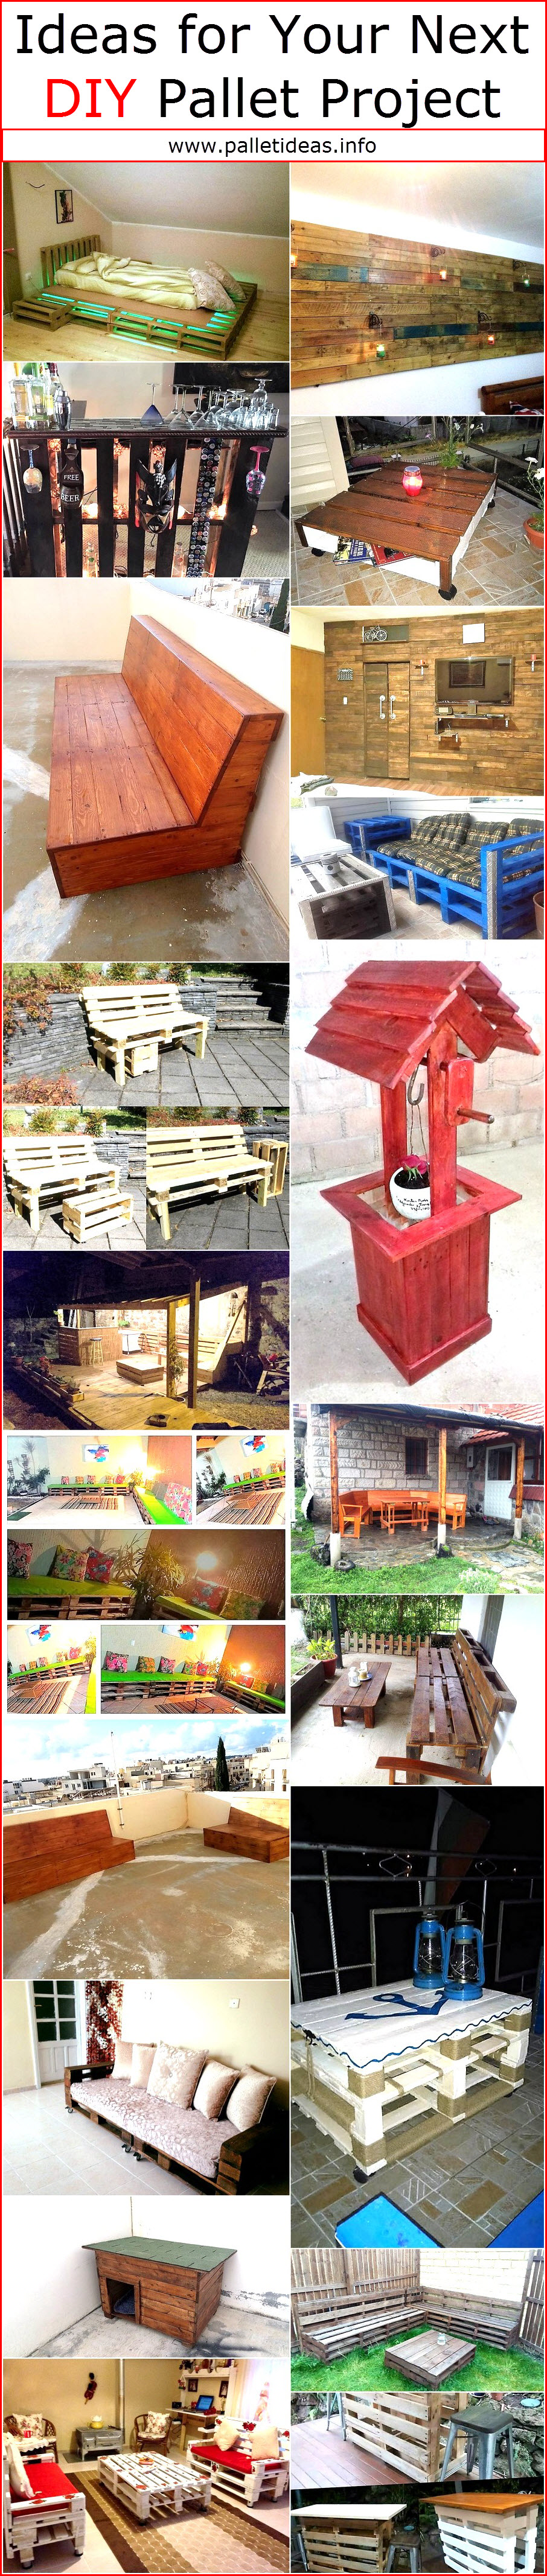 ideas-for-your-next-diy-pallet-project